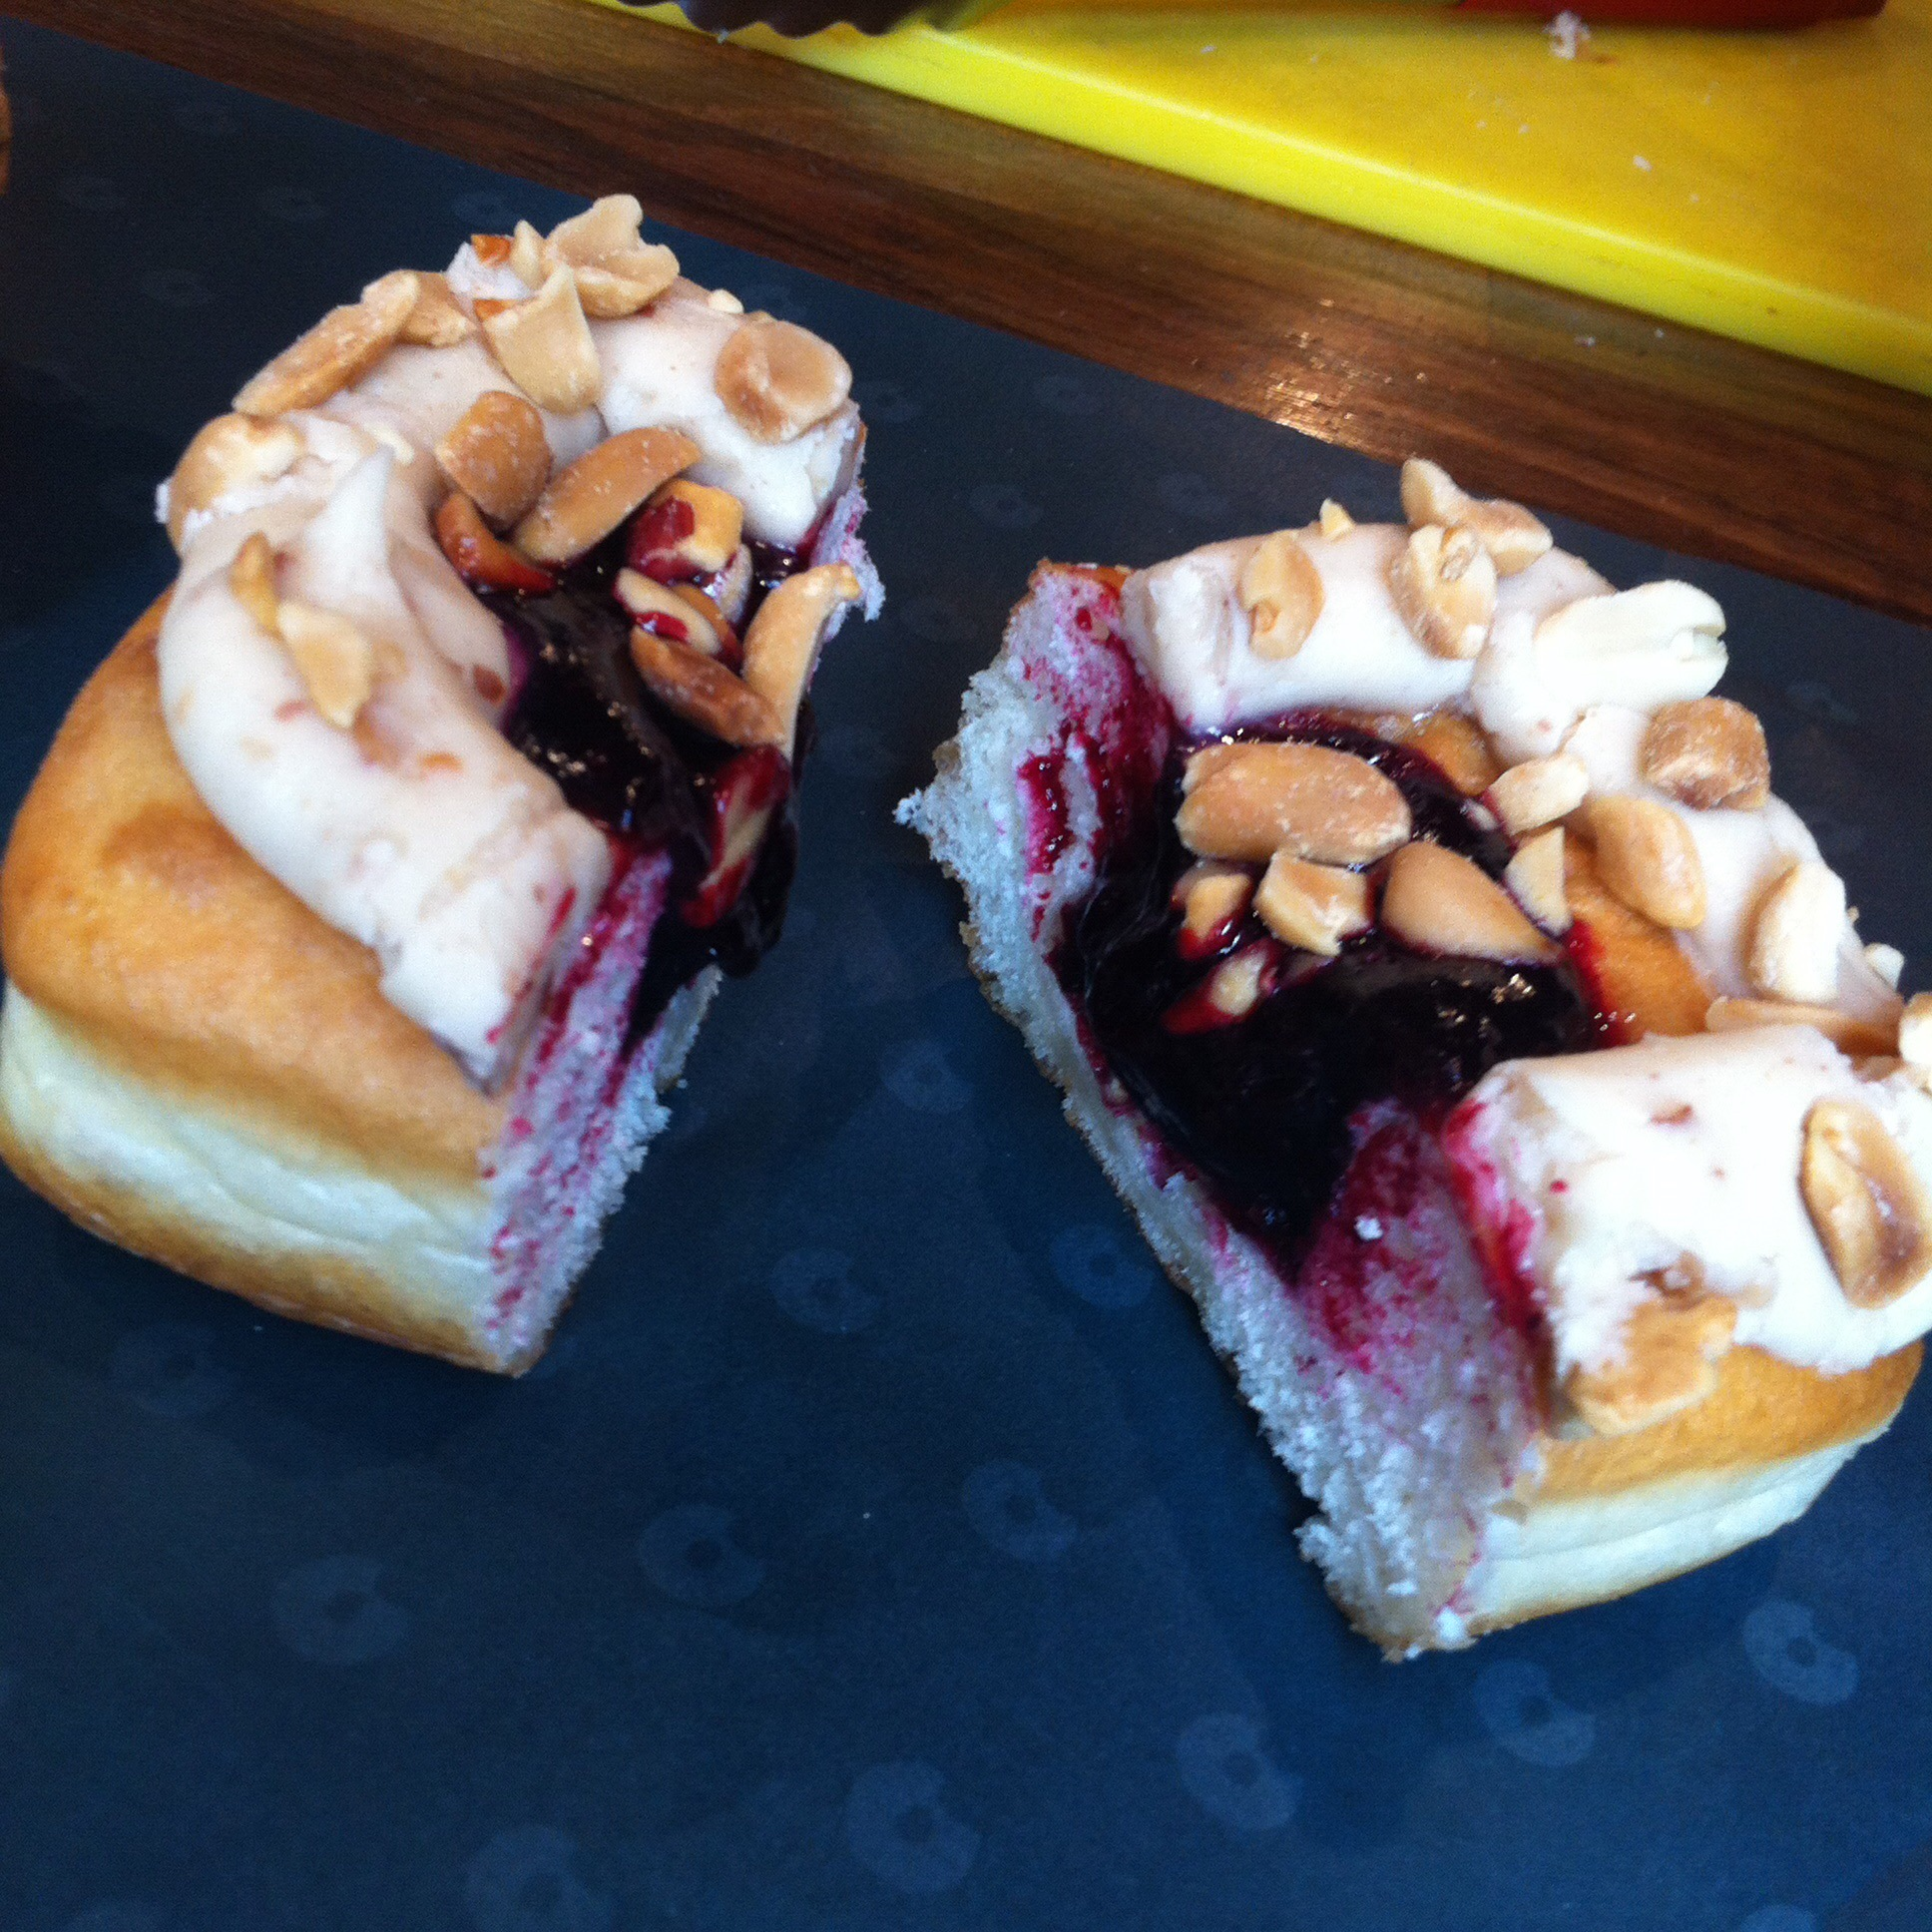 Peanut butter and jelly doughnut